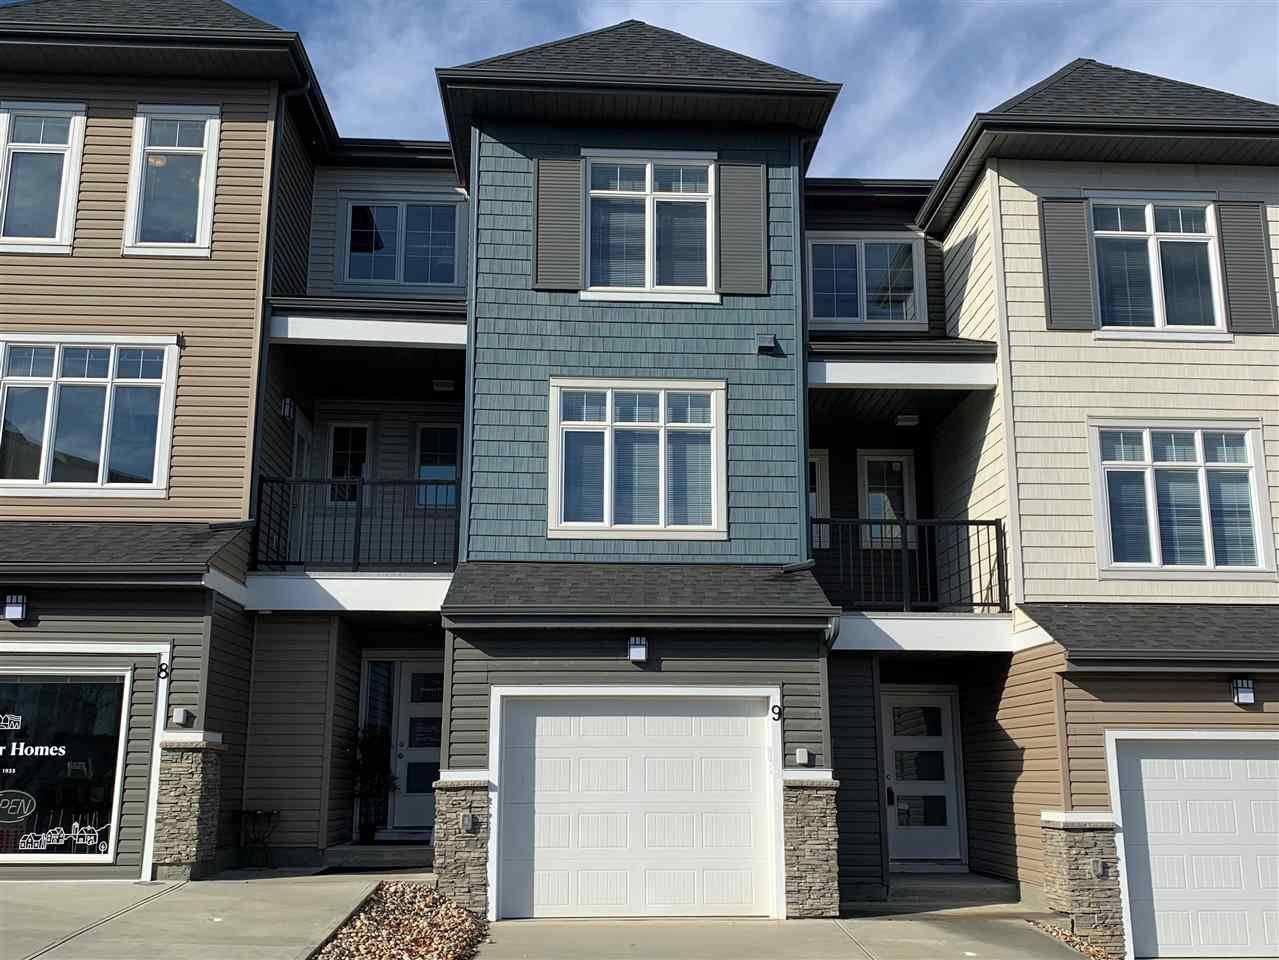 Main Photo: 9 600 Bellerose Drive: St. Albert Townhouse for sale : MLS®# E4176874